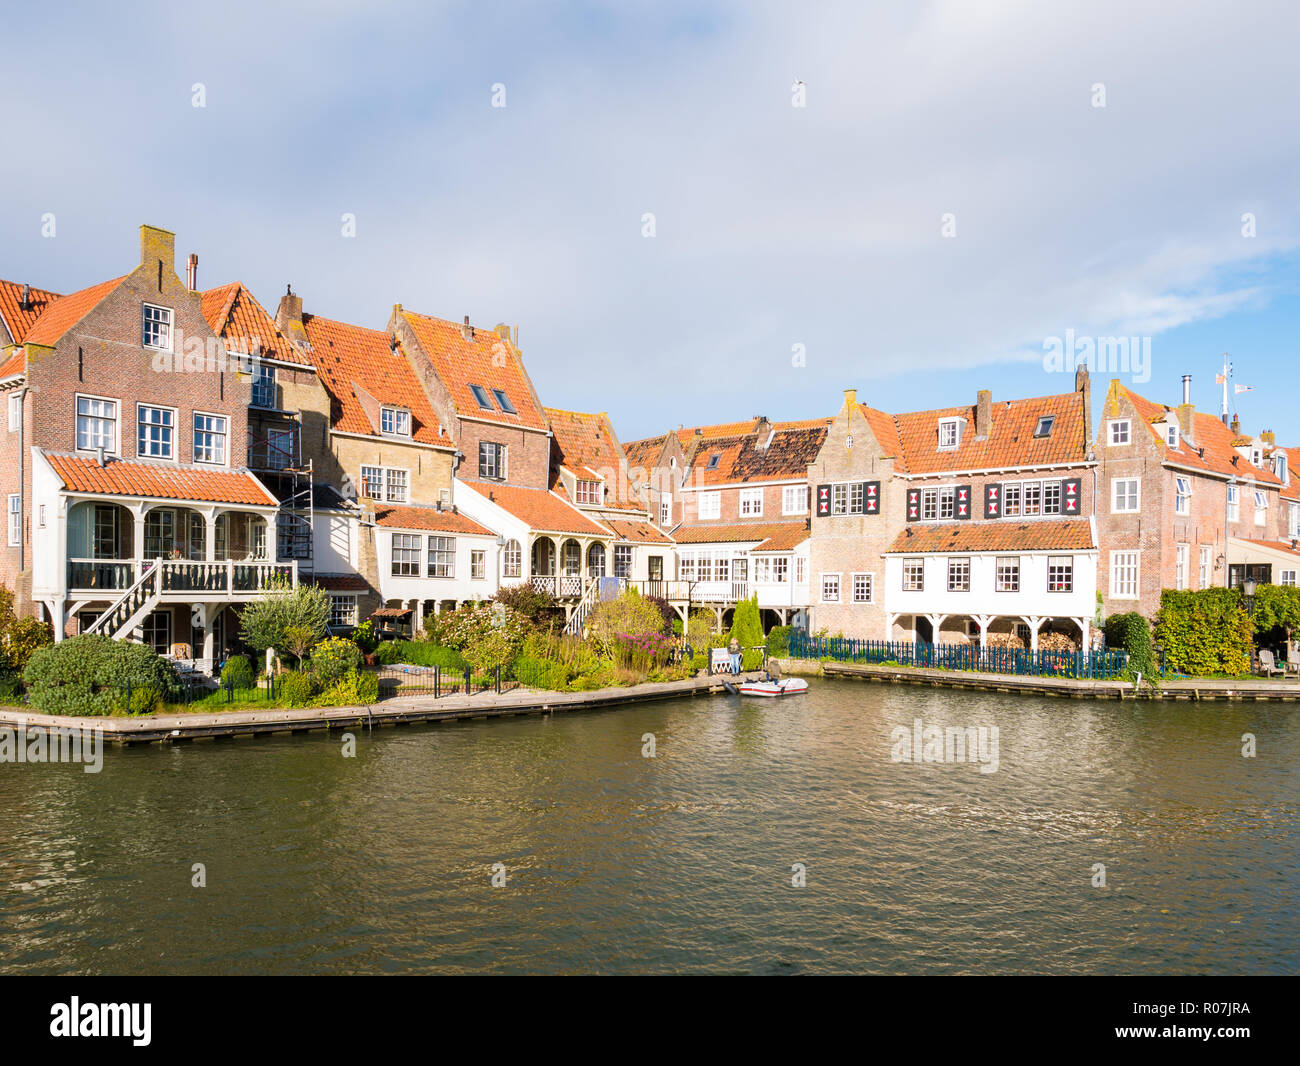 Old brick waterfront houses of De Bocht in Enkhuizen, Noord-Holland, Netherlands - Stock Image